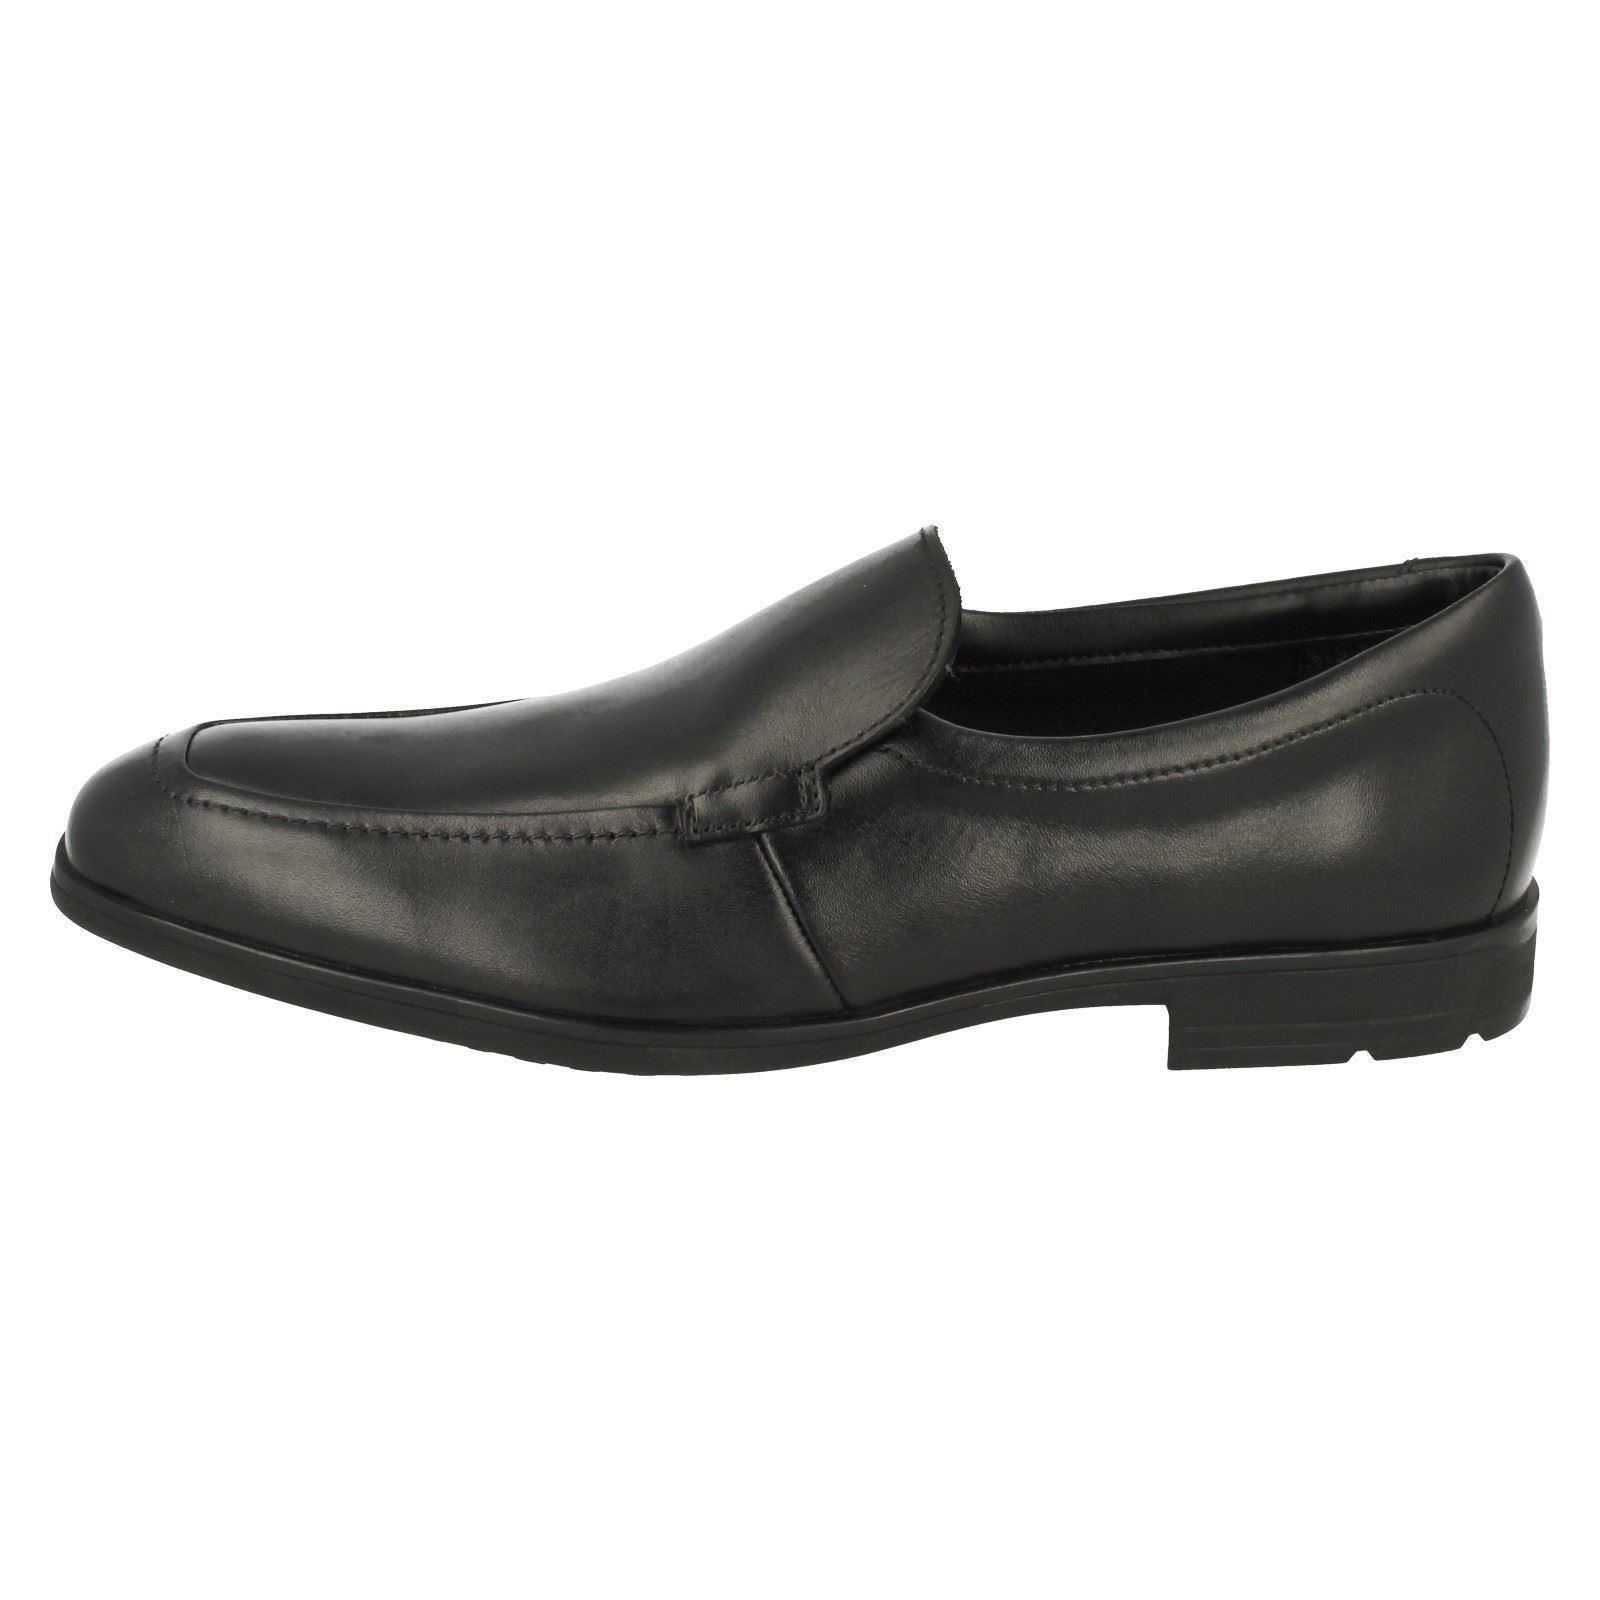 Boys Clarks Rounded Toe Smart Slip On Leather School Shoes Willis Step